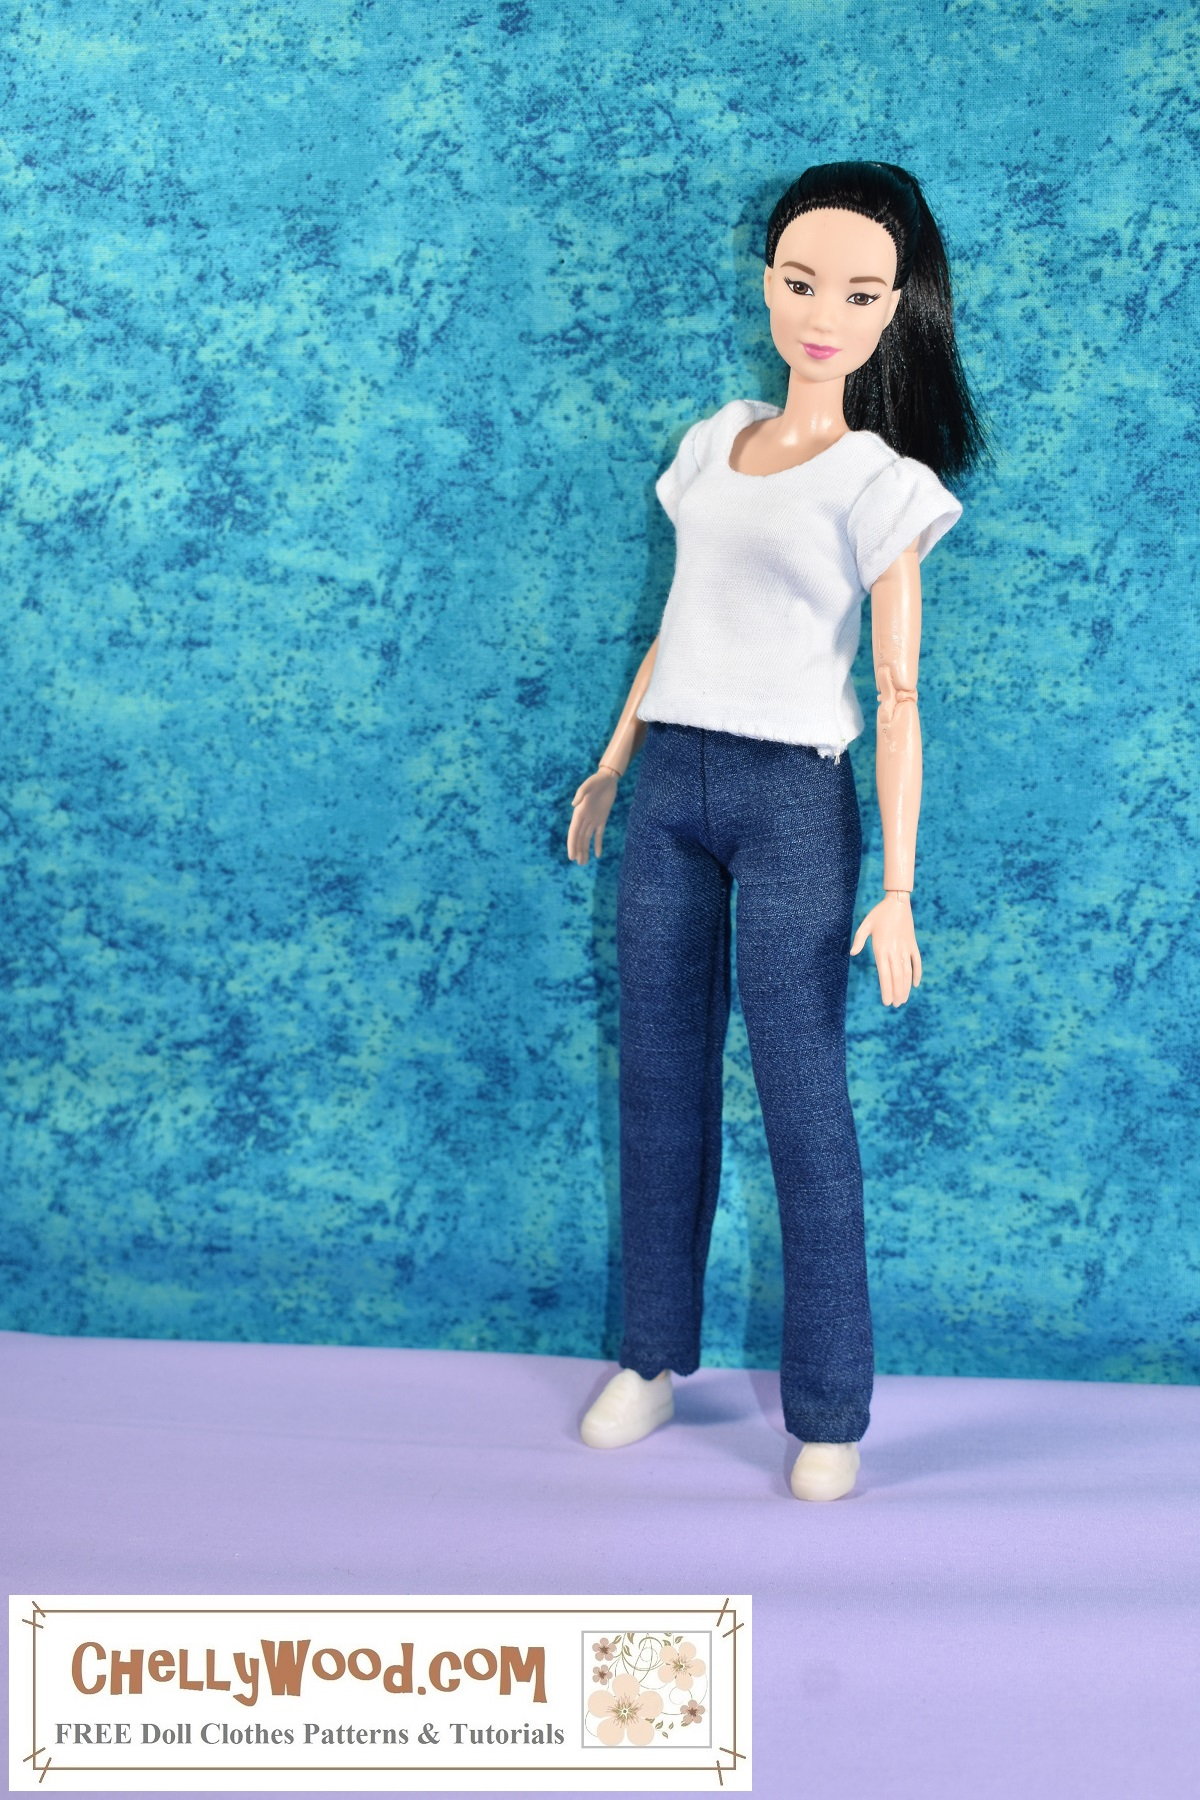 Click on the link in the caption for free patterns and tutorial videos for making this pair of jeans and a T-shirt to fit 11.5 inch or 29 cm dolls like Barbie, Francie, Queens of Africa, and Spin Master Liv dolls.